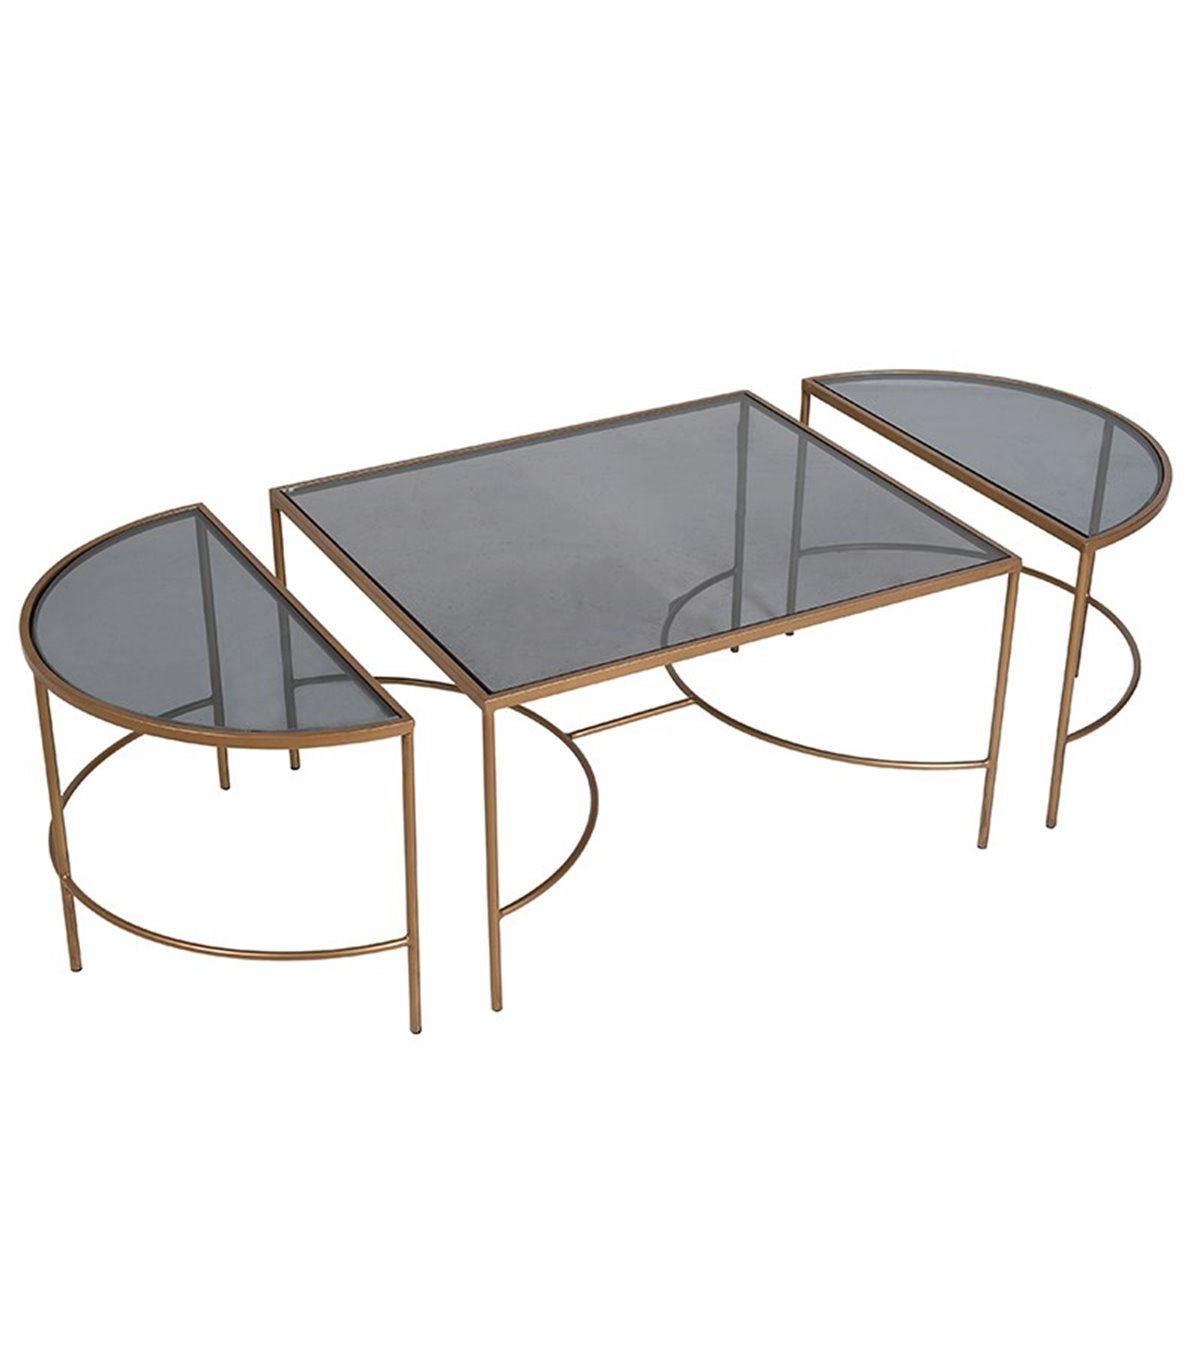 Modular Coffee Tables Intended For Most Recent Modular Glass Top Oblong Coffee Table (View 9 of 20)